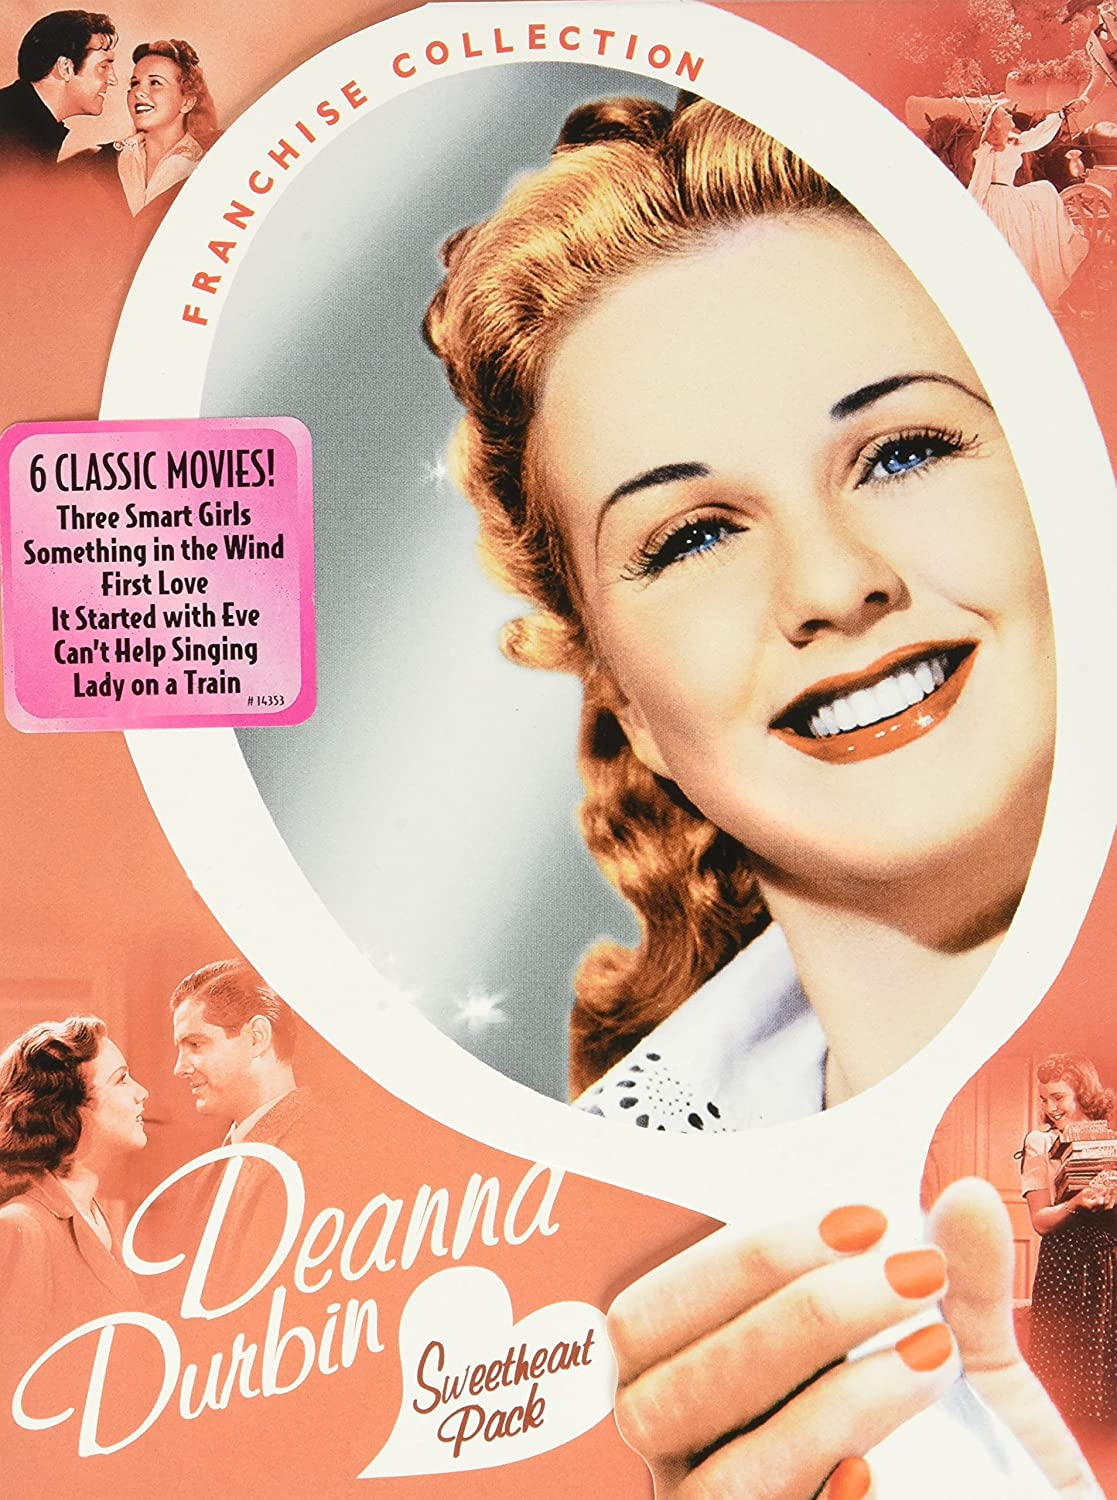 Deanna Durbin Sweetheart Pack (Three Smart Girls / Something In the Wind / First Love / It Started with Eve / Can't Help Singing / Lady on a Train)